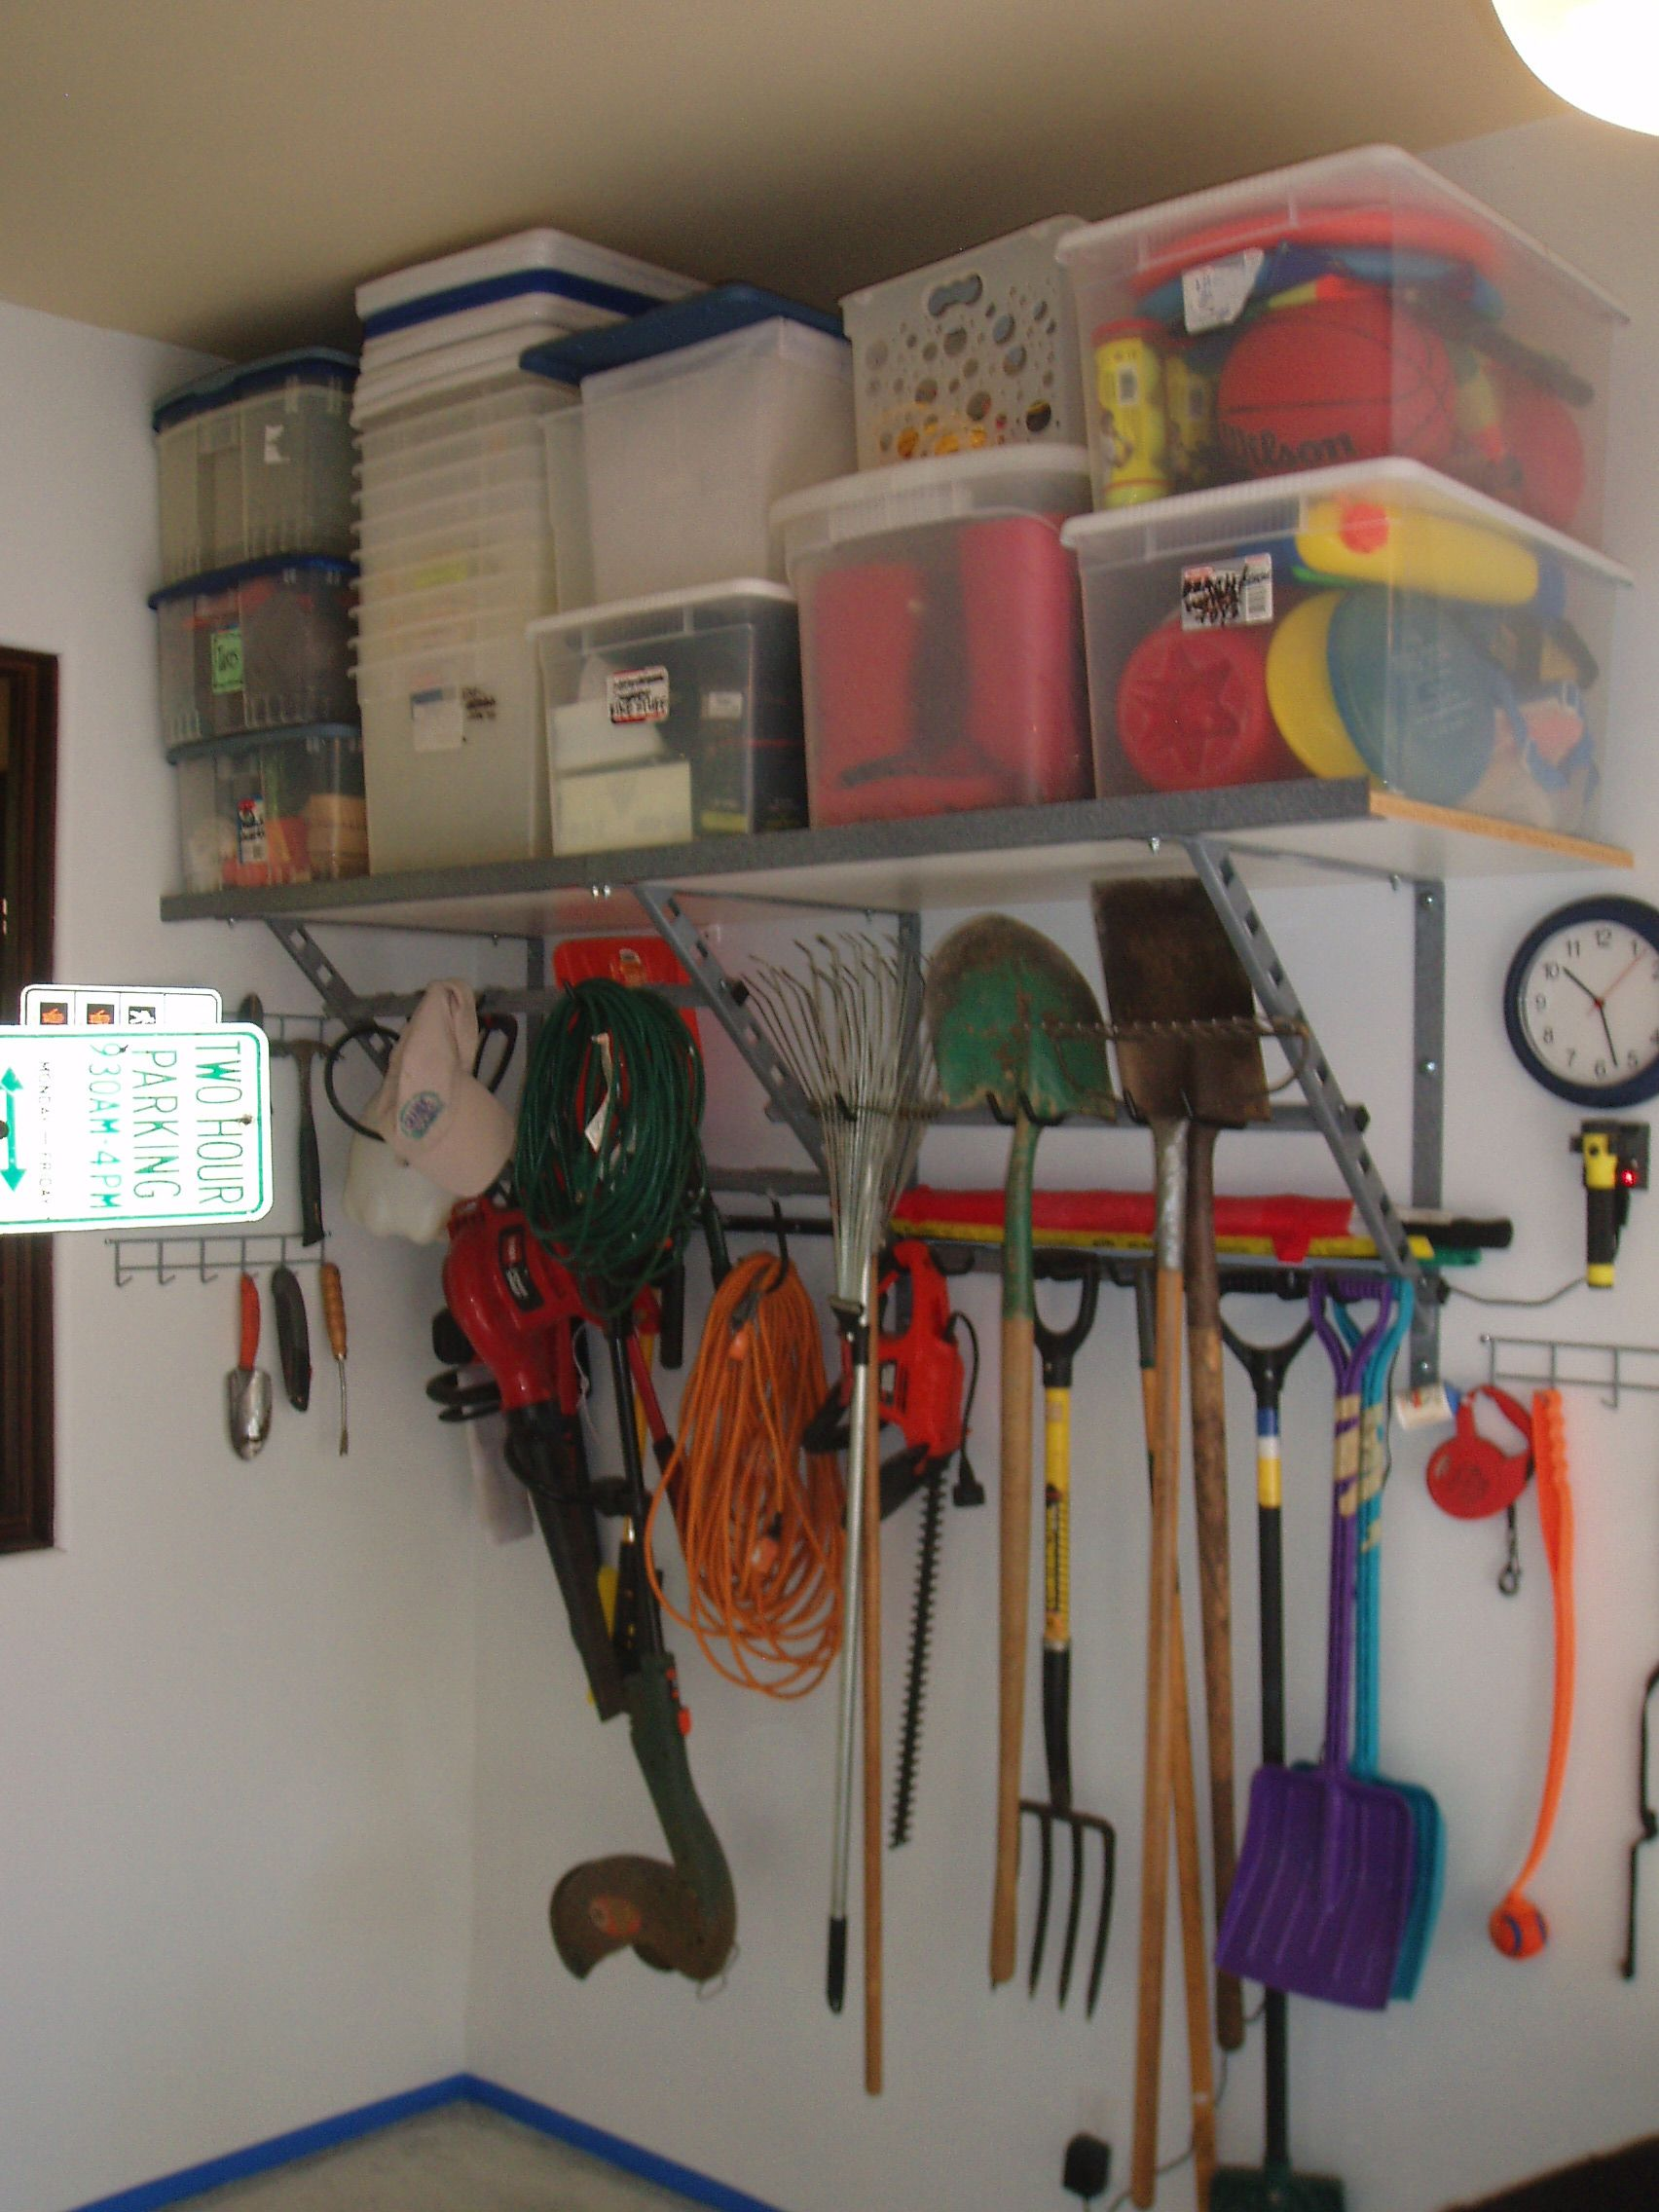 racks buy shelves standing boltess saferacks and boxes direct with archive record shelf garage free storage shelving